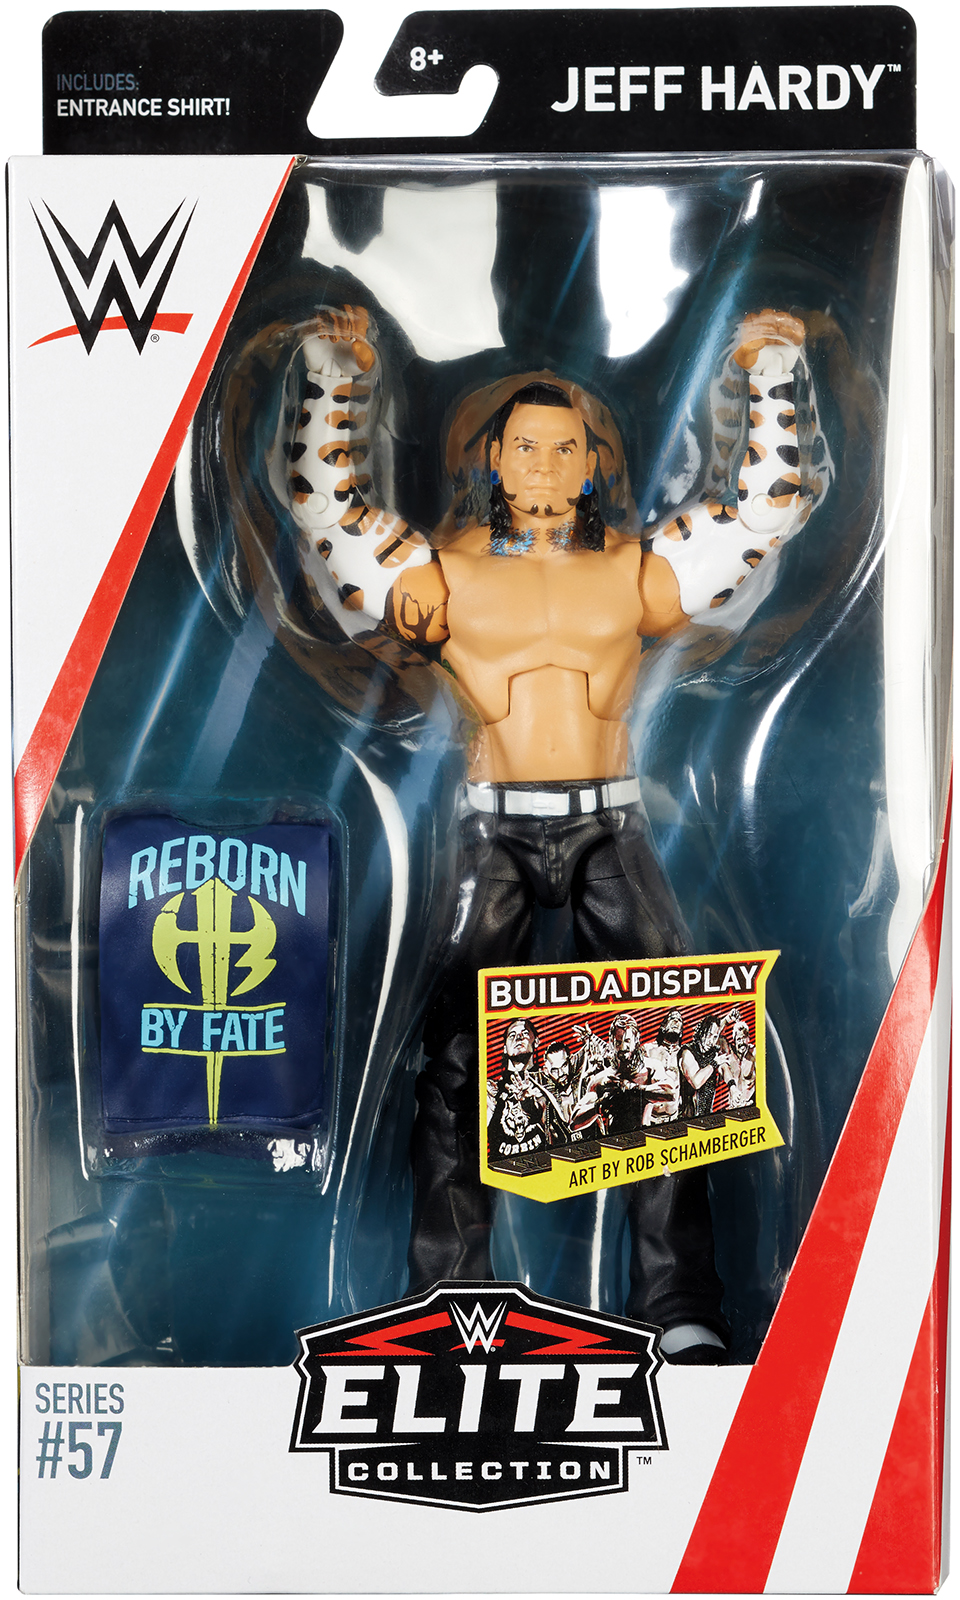 Jeff Hardy WWE Elite 57 Toy Wrestling Action Figure by Mattel